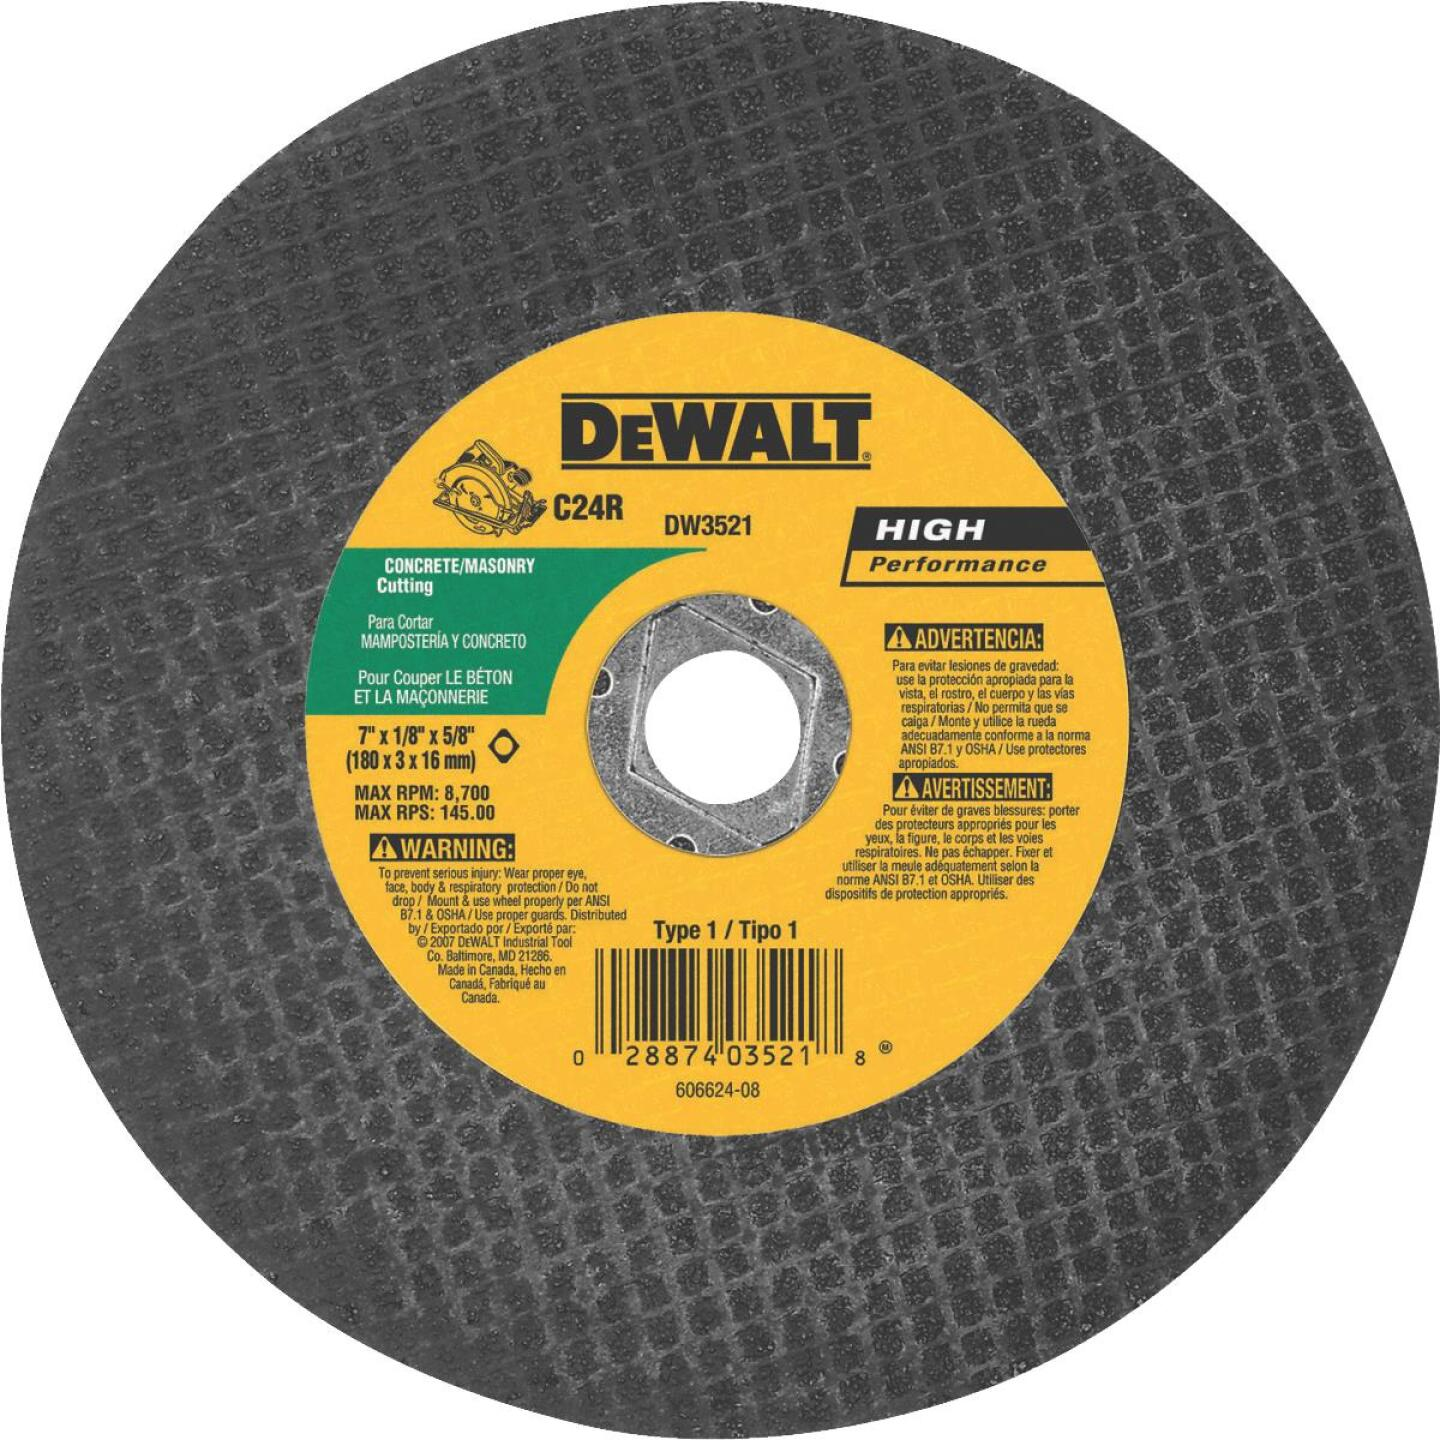 DeWalt HP Type 1 7 In. x 1/8 In. x 5/8 In. Masonry Cut-Off Wheel Image 1